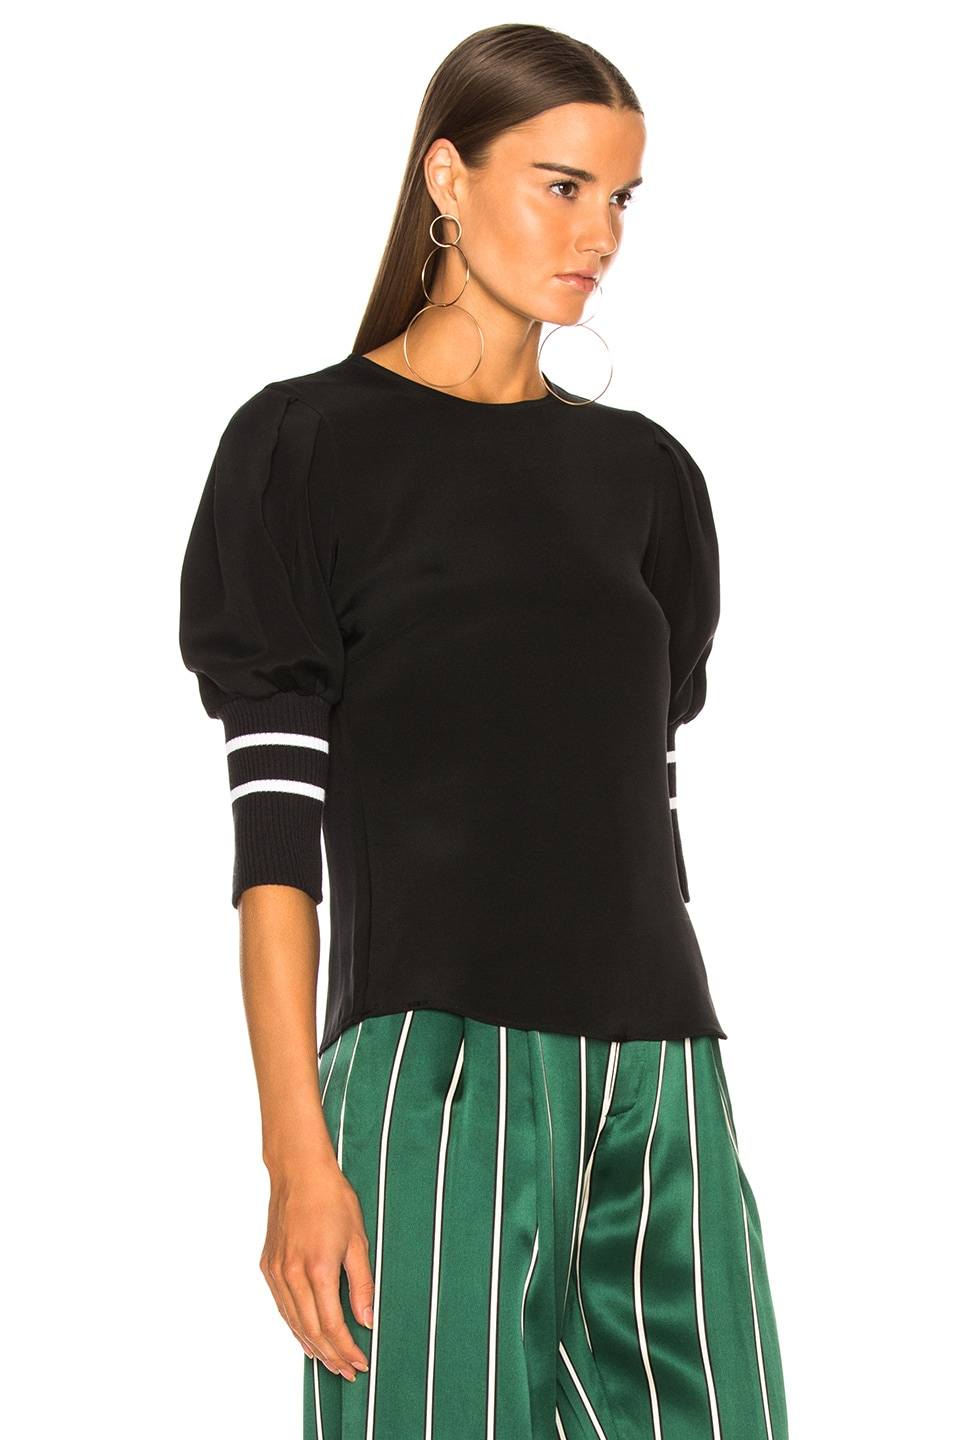 MAGGIE MARILYN Cottons MAGGIE MARILYN DON'T LOSE YOURSELF TOP IN BLACK